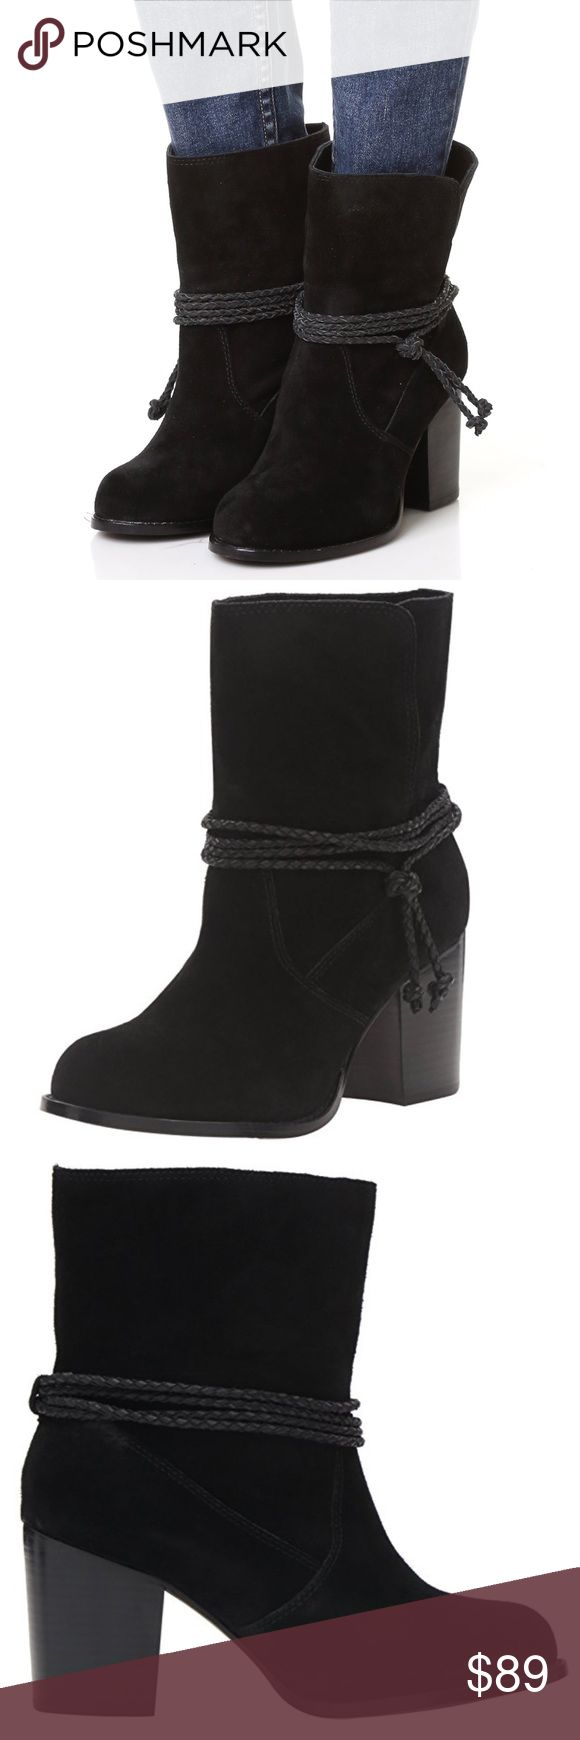 Wraparound Cowhide Slouch Boots Luxe suede Splendid booties styled with a braided wraparound strap at the split shaft. Stacked heel Leather: Cowhide. Black Measurements Heel: 2.75in / 70mm Splendid X Anthropologie Anthropologie Shoes Ankle Boots & Booties